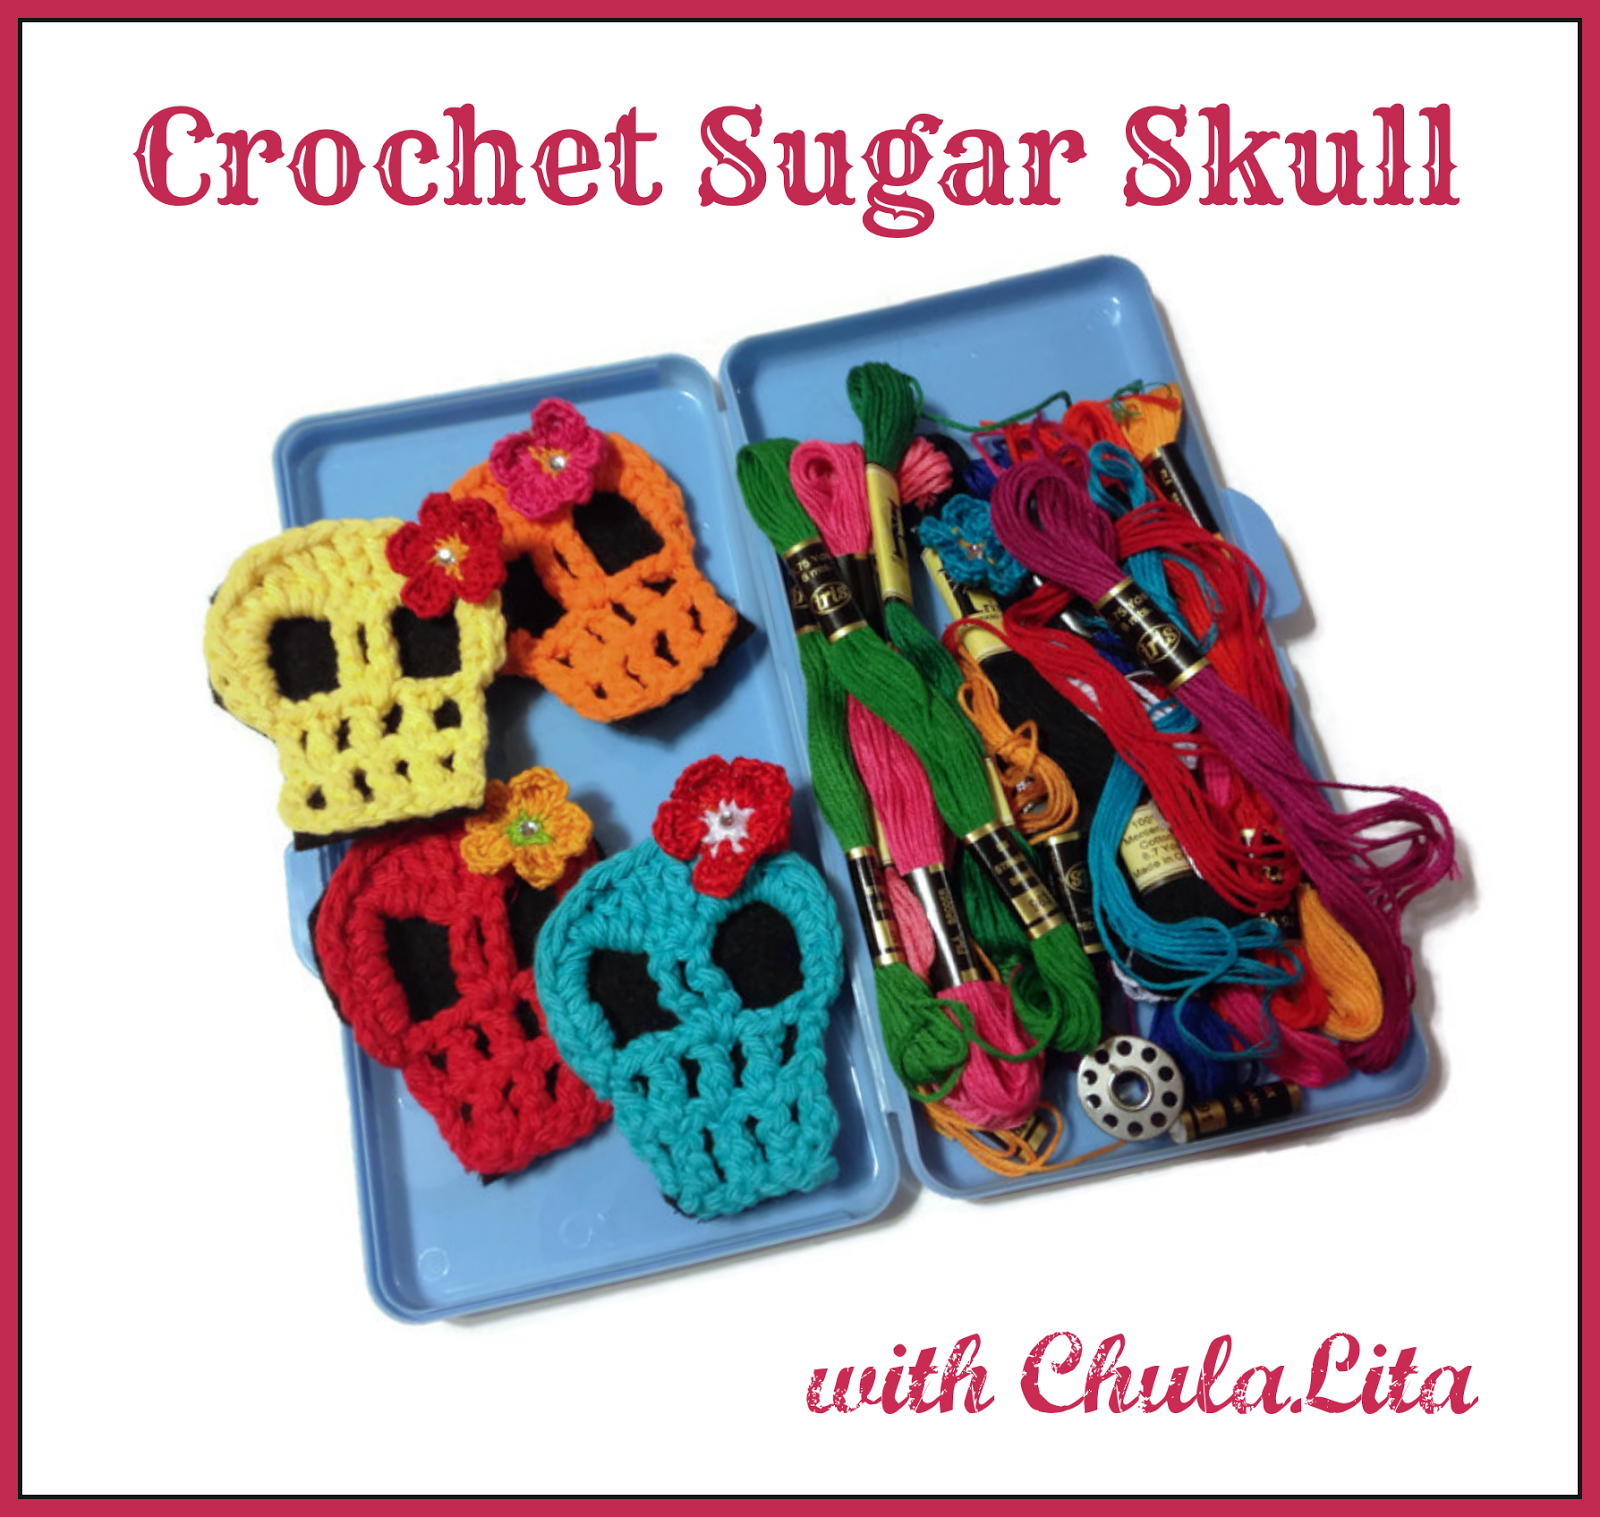 Crochet Sugar Skull Workshop with ChulaLita Make Your Wink Workshops Wink Artisans